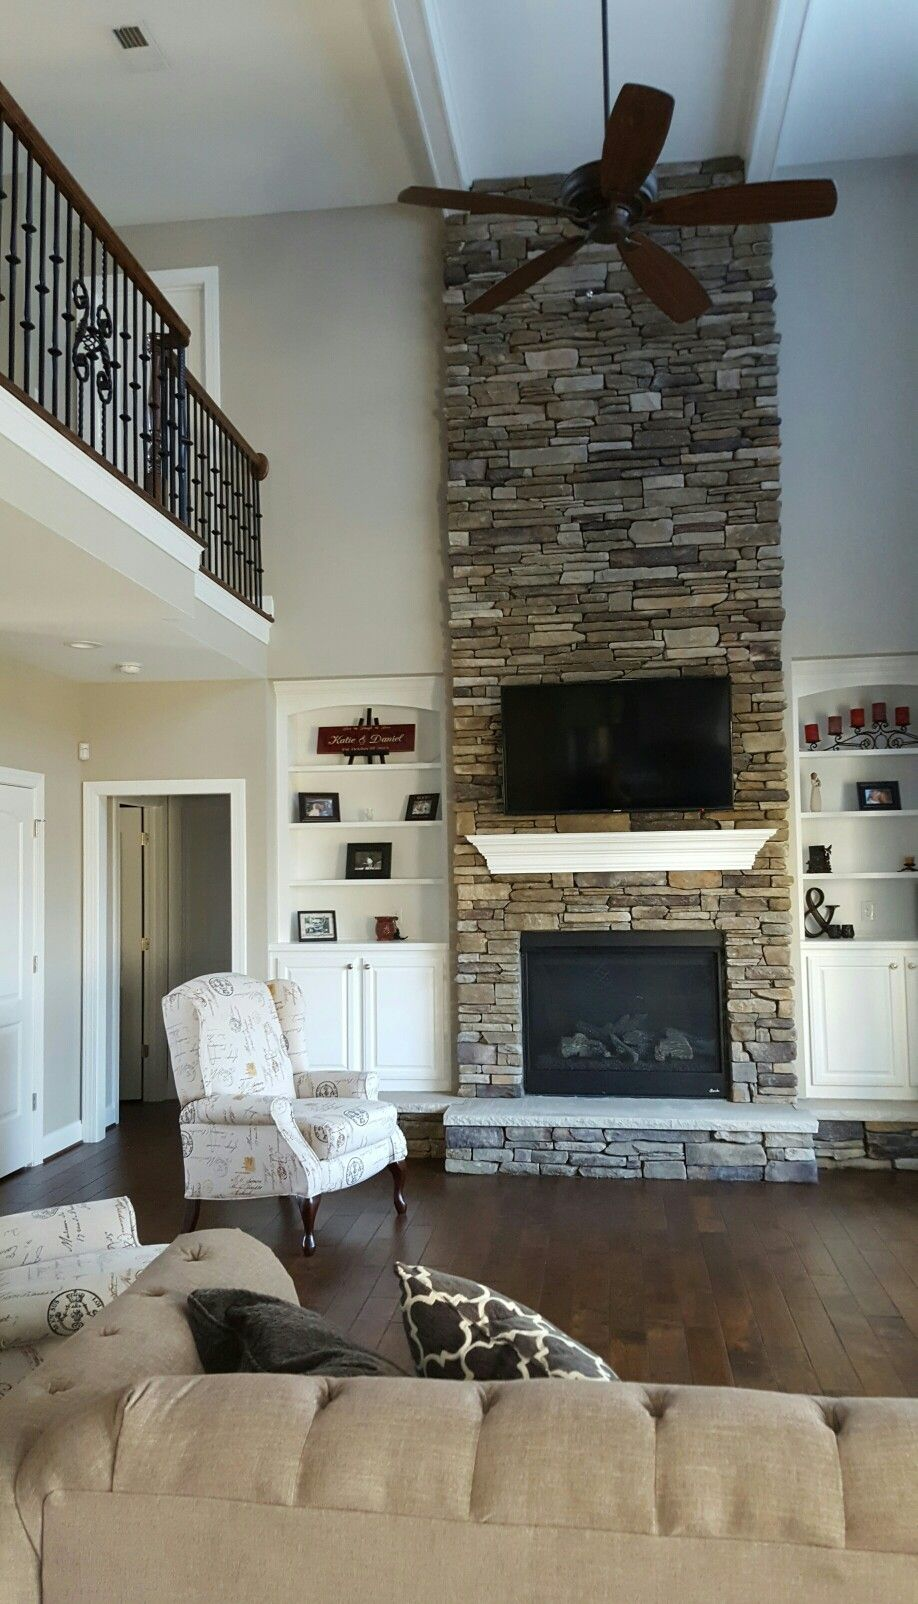 Small Two Story House Design: Great Room With Two Story Stone Fireplace And Catwalk